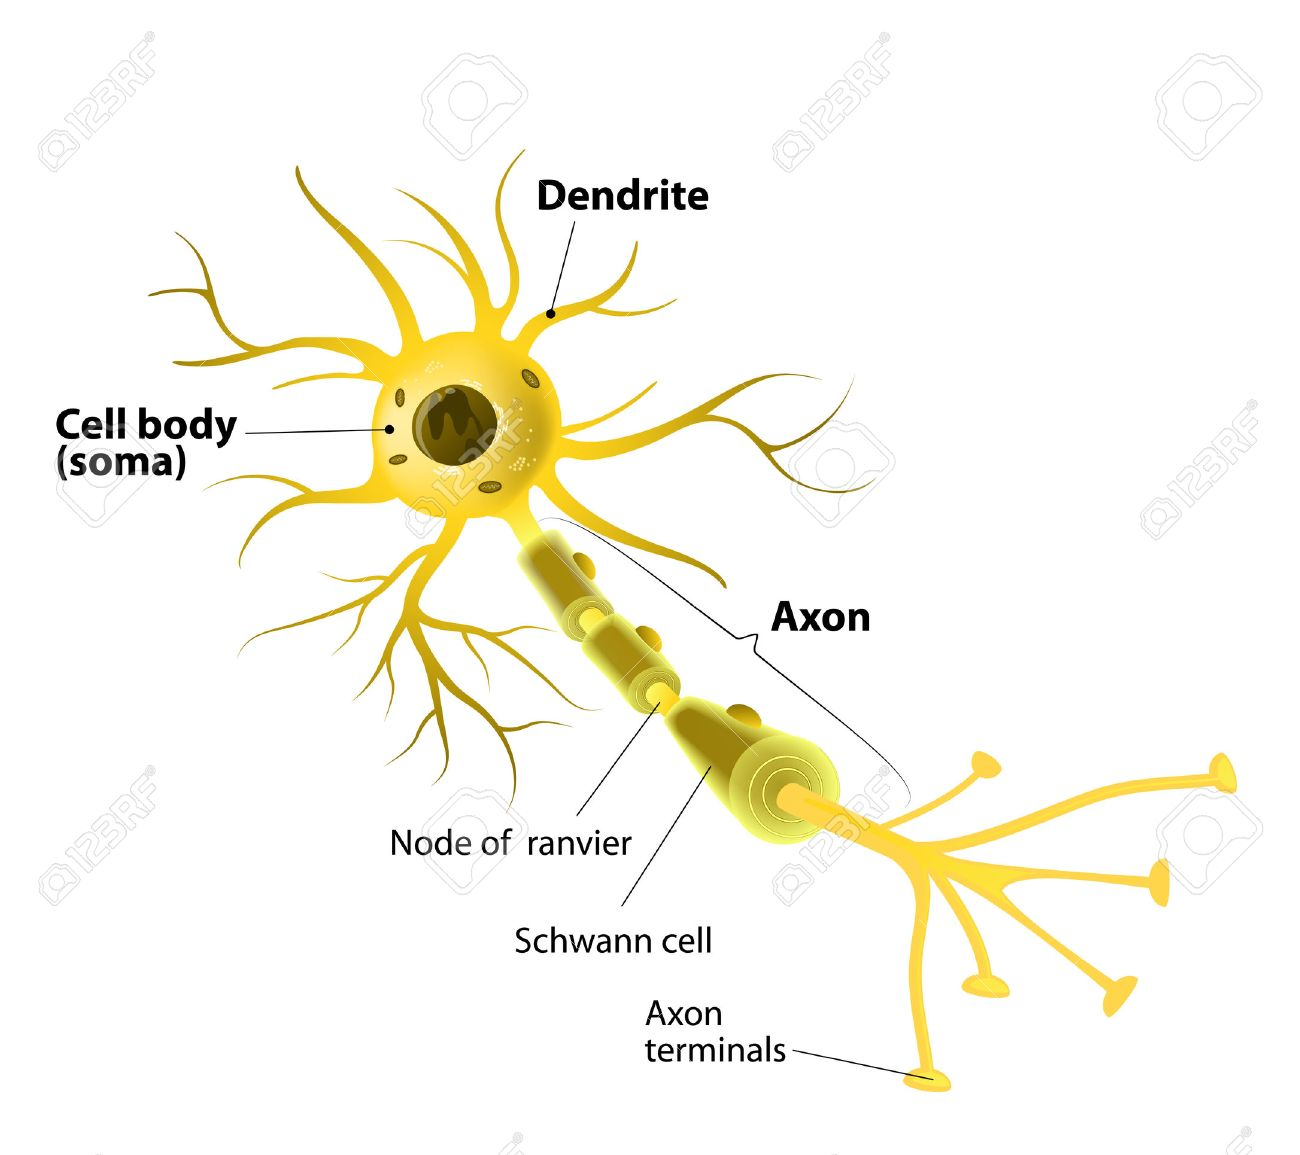 Neuron and synapse labeled diagram royalty free cliparts vectors neuron and synapse labeled diagram stock vector 37371607 ccuart